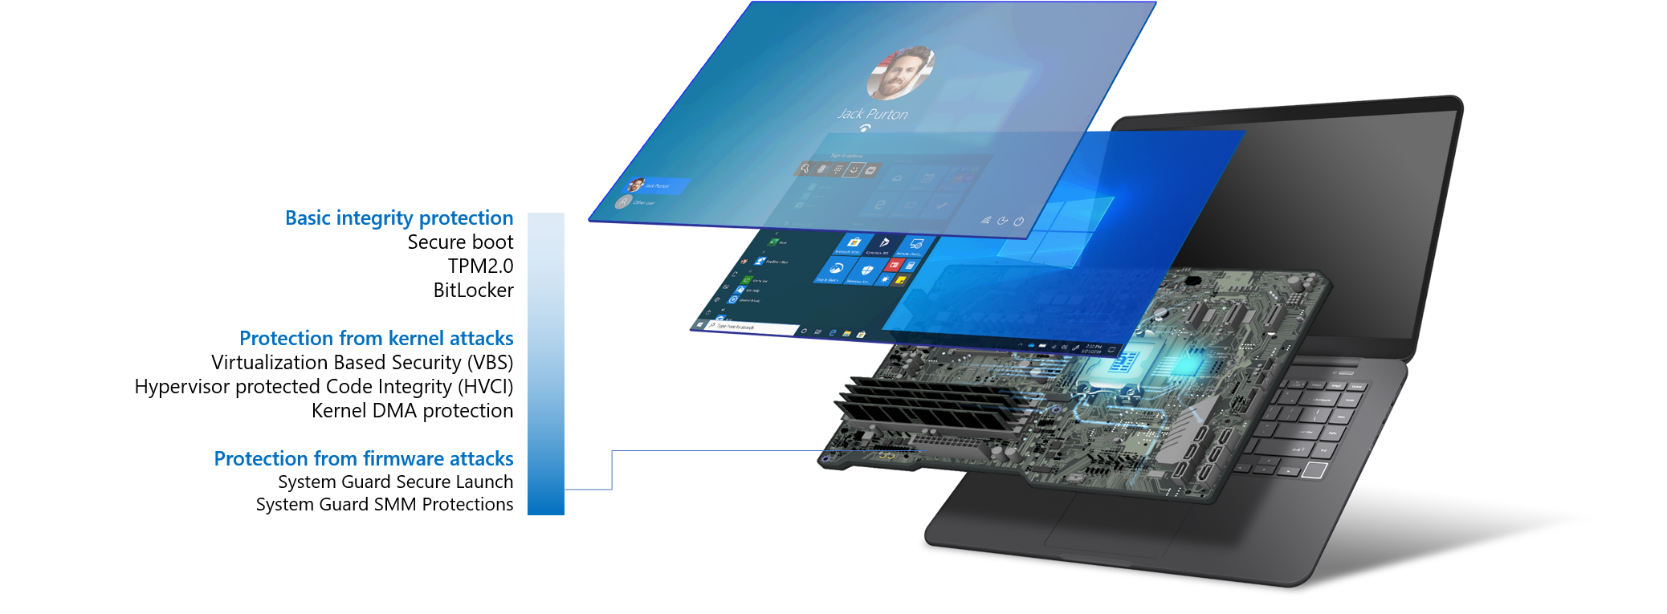 Microsoft announces new Secured-core PCs running Windows 10 fig-2-secured-core-pc.png